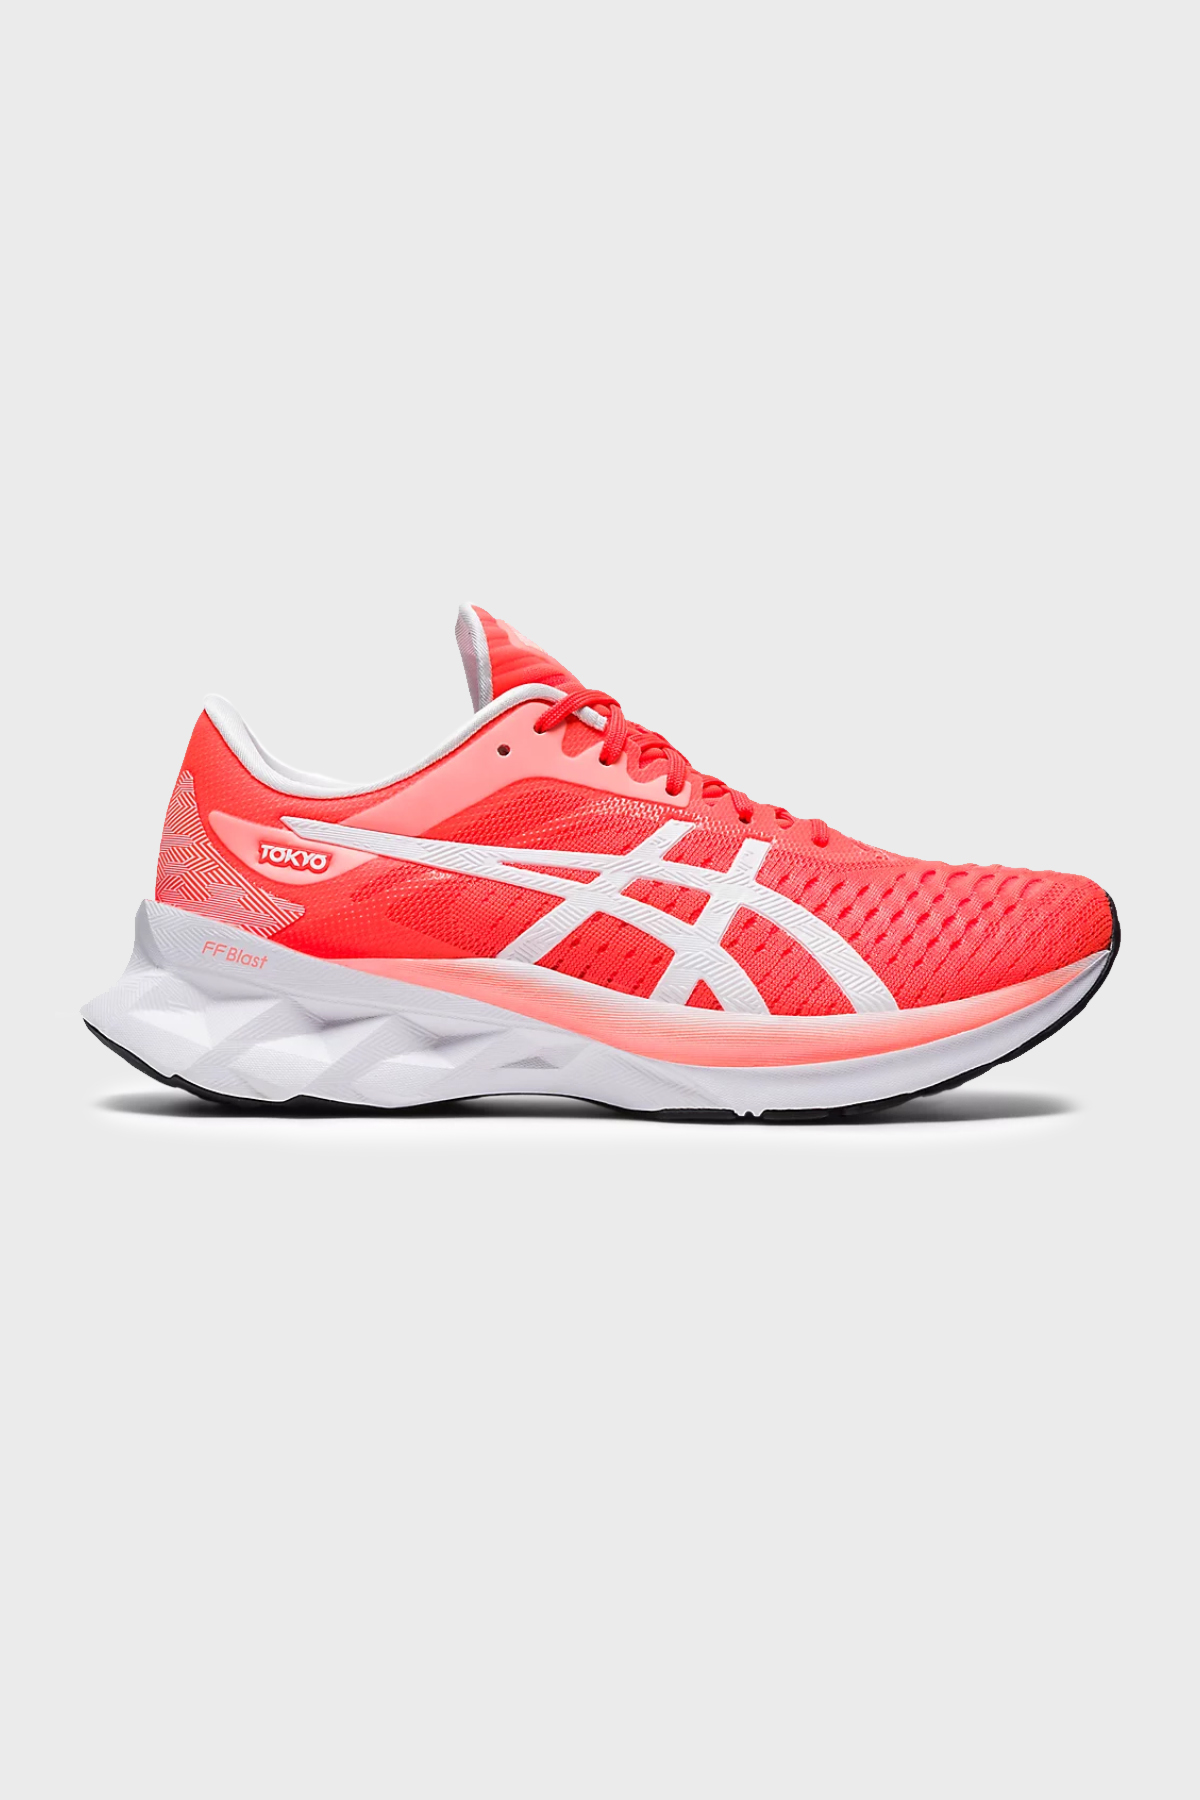 Asics W - Novablast - Sunrise Red